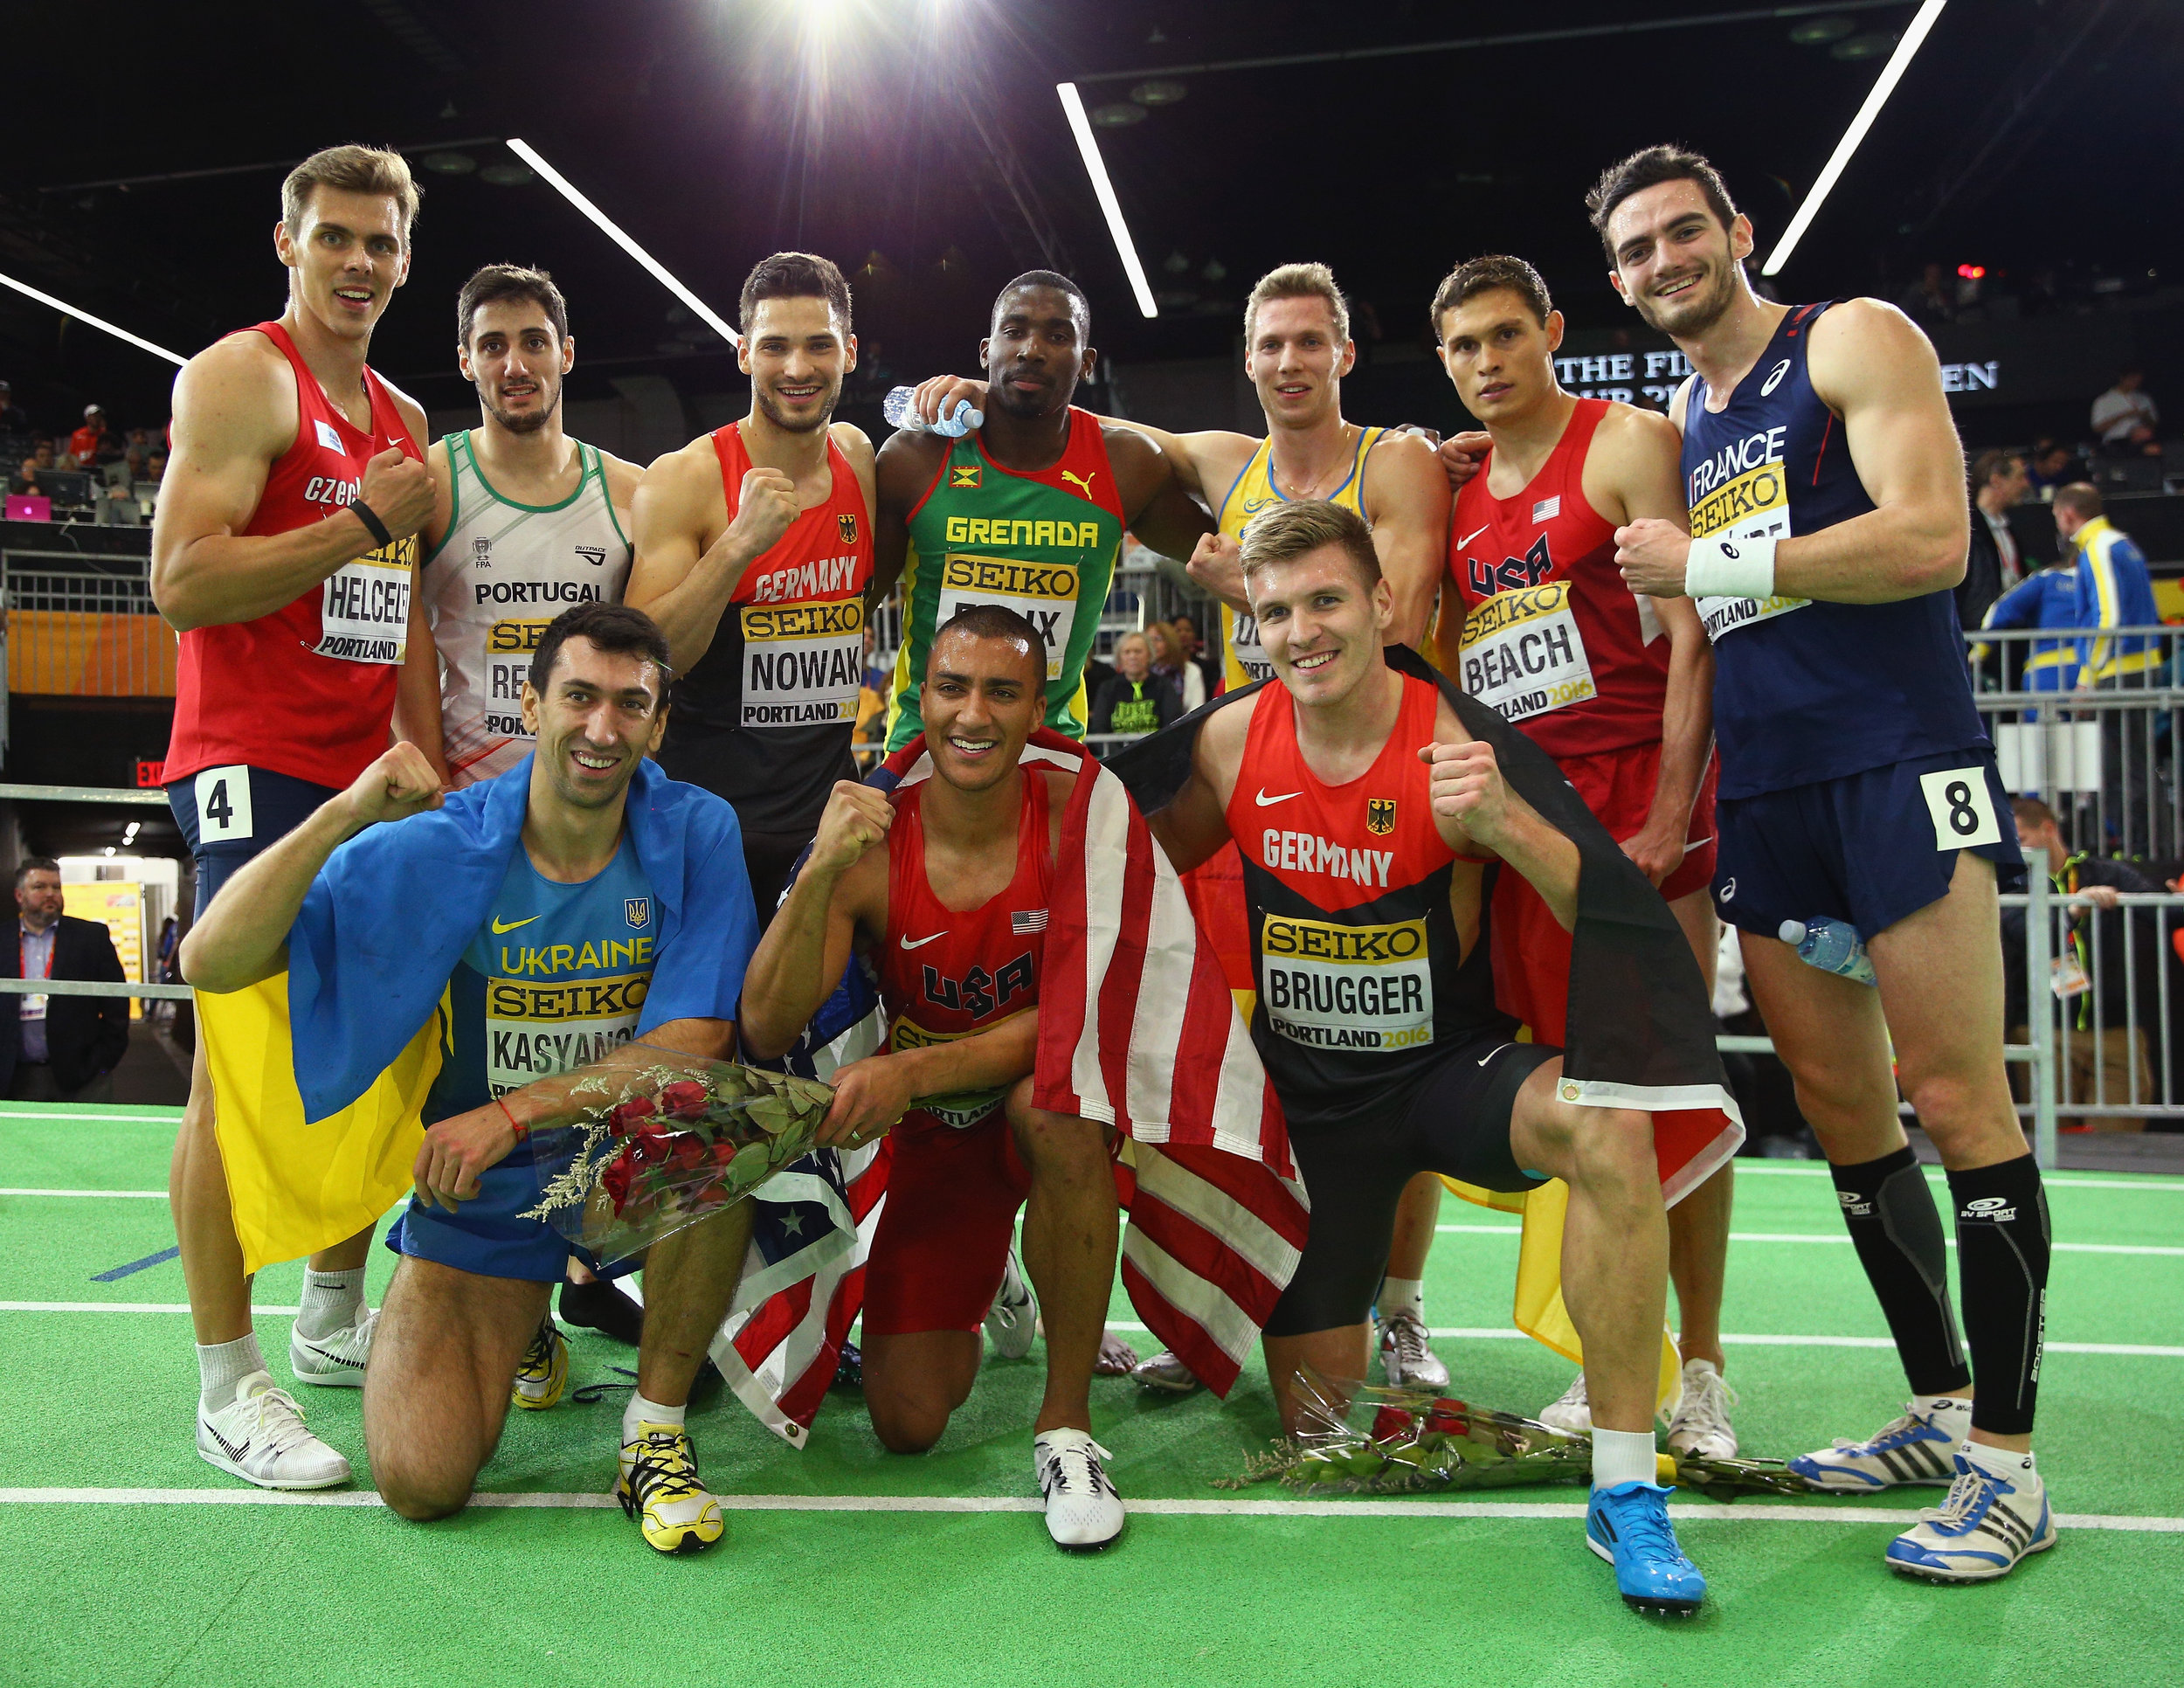 After the heptathlon // Getty Images for the IAAF